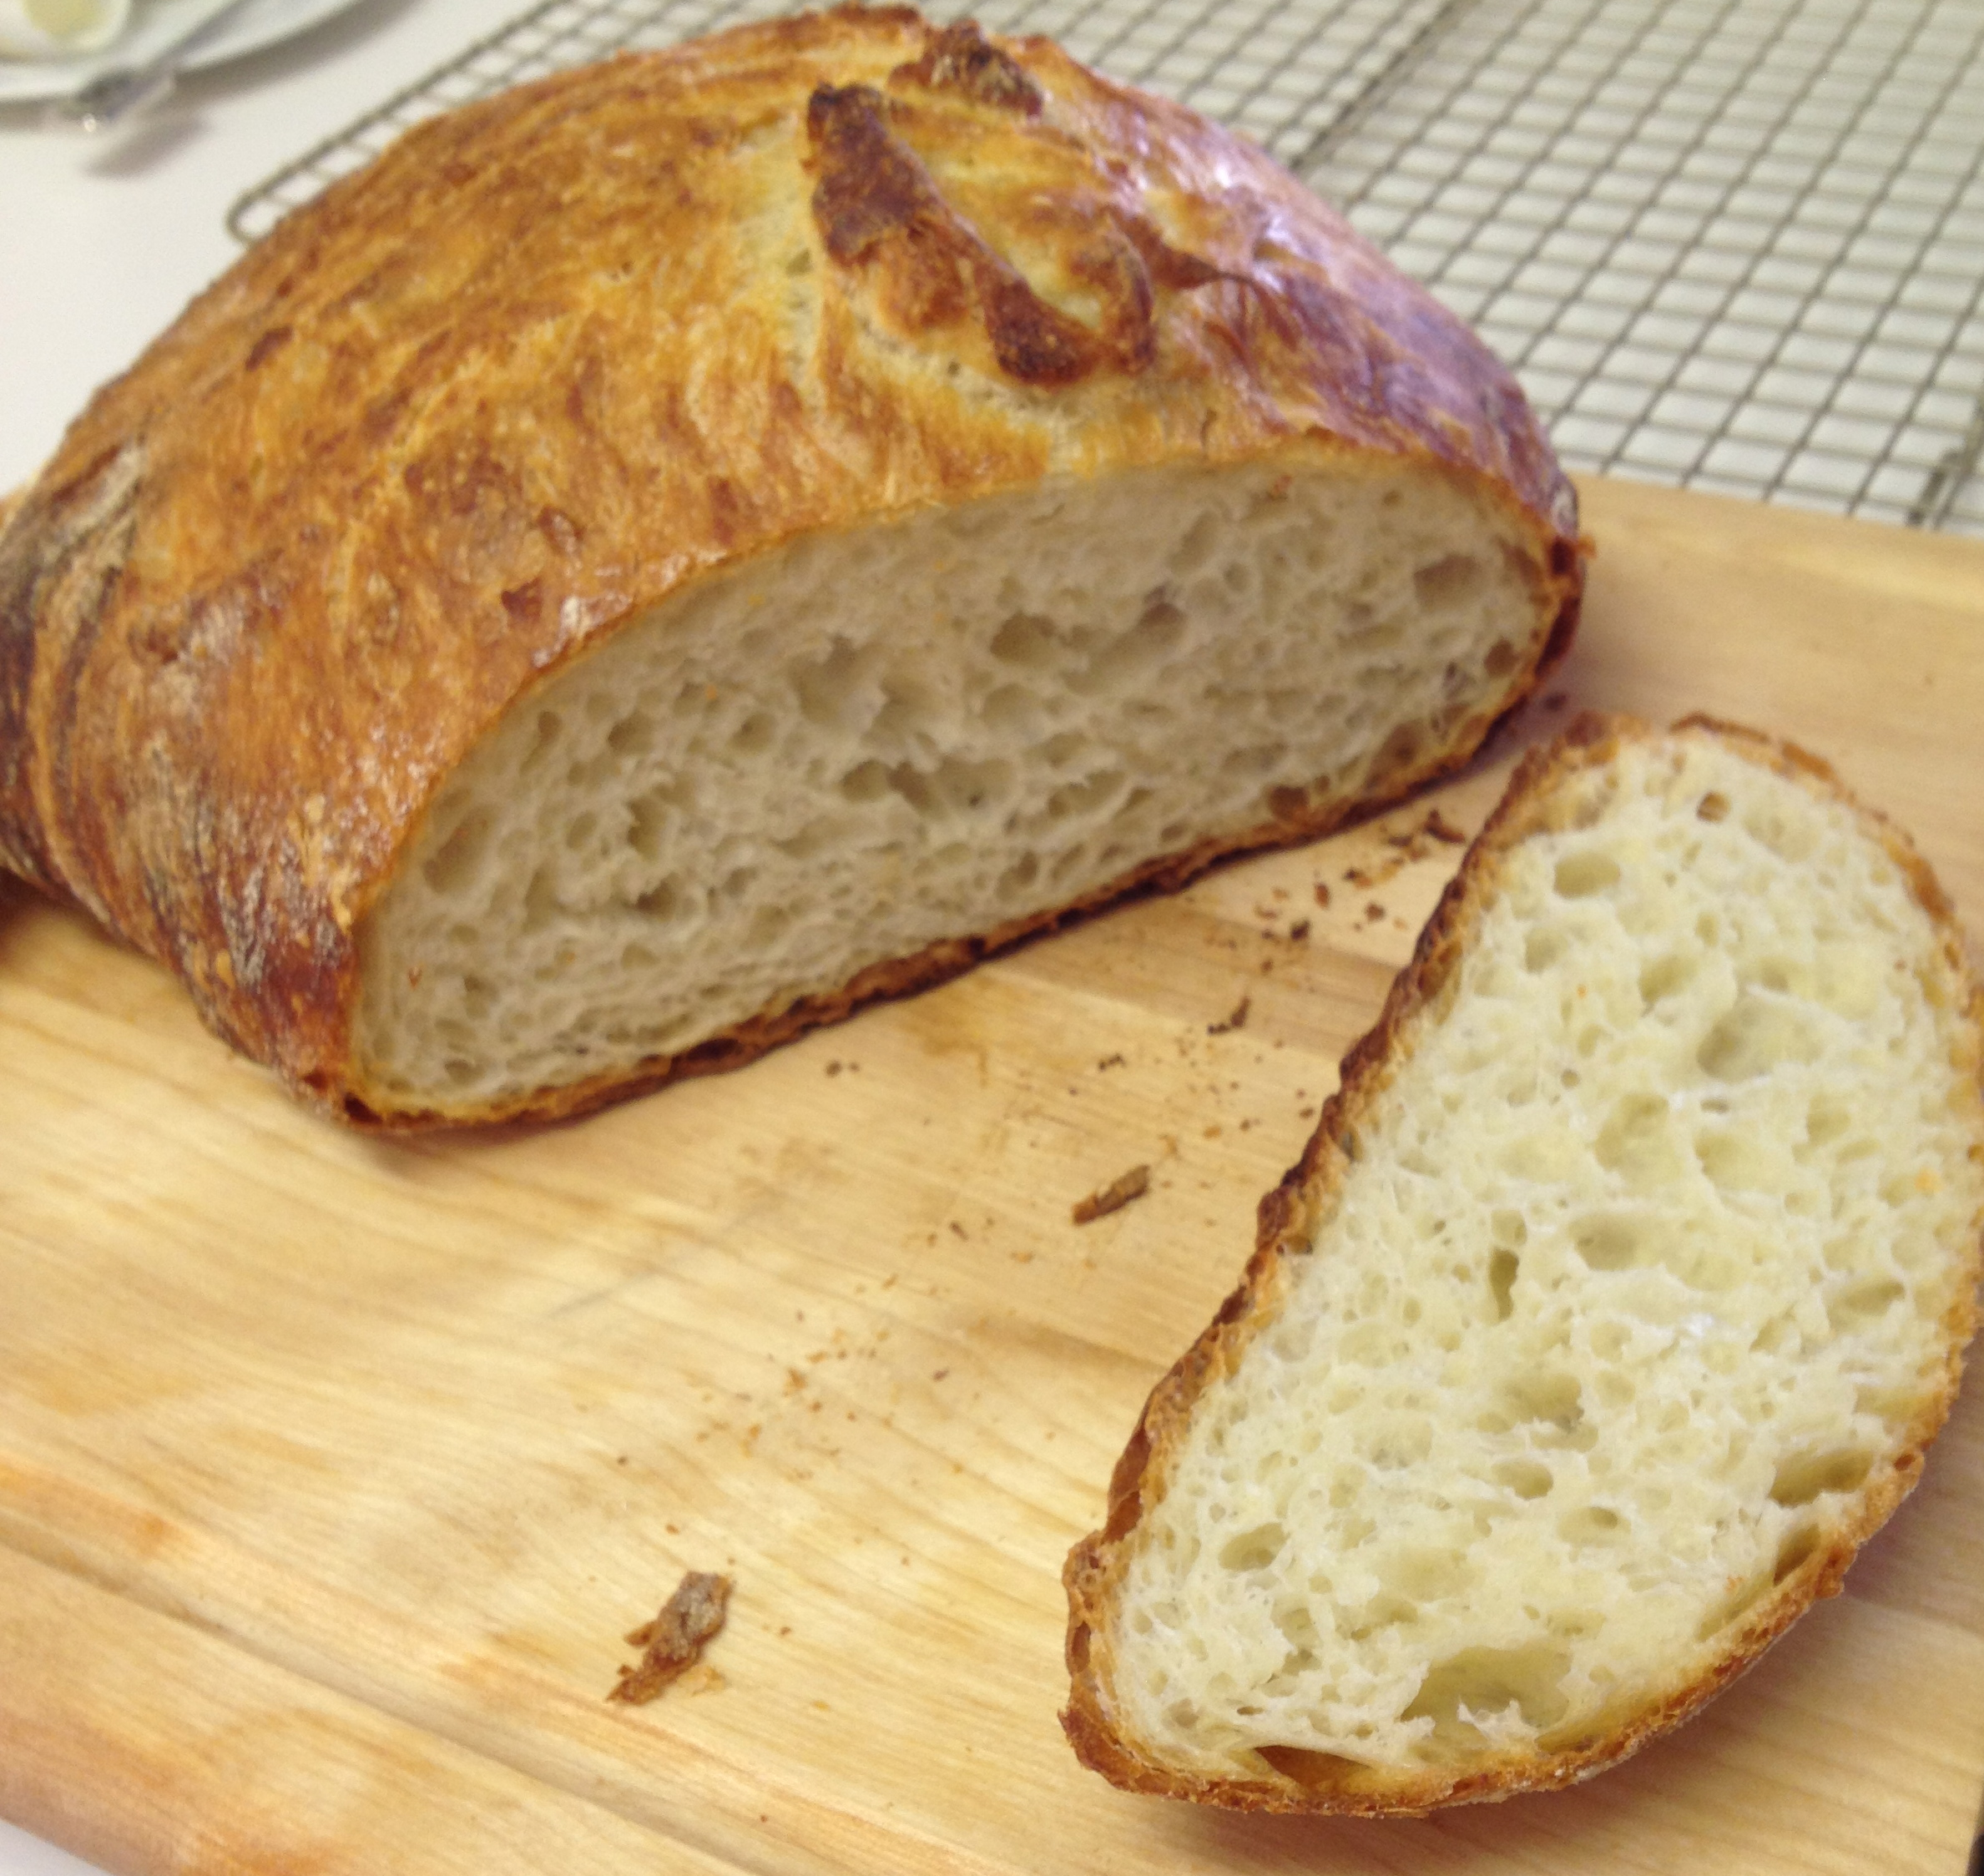 This No-Knead Bread recipe is one of my absolute favorite recipes ever ...